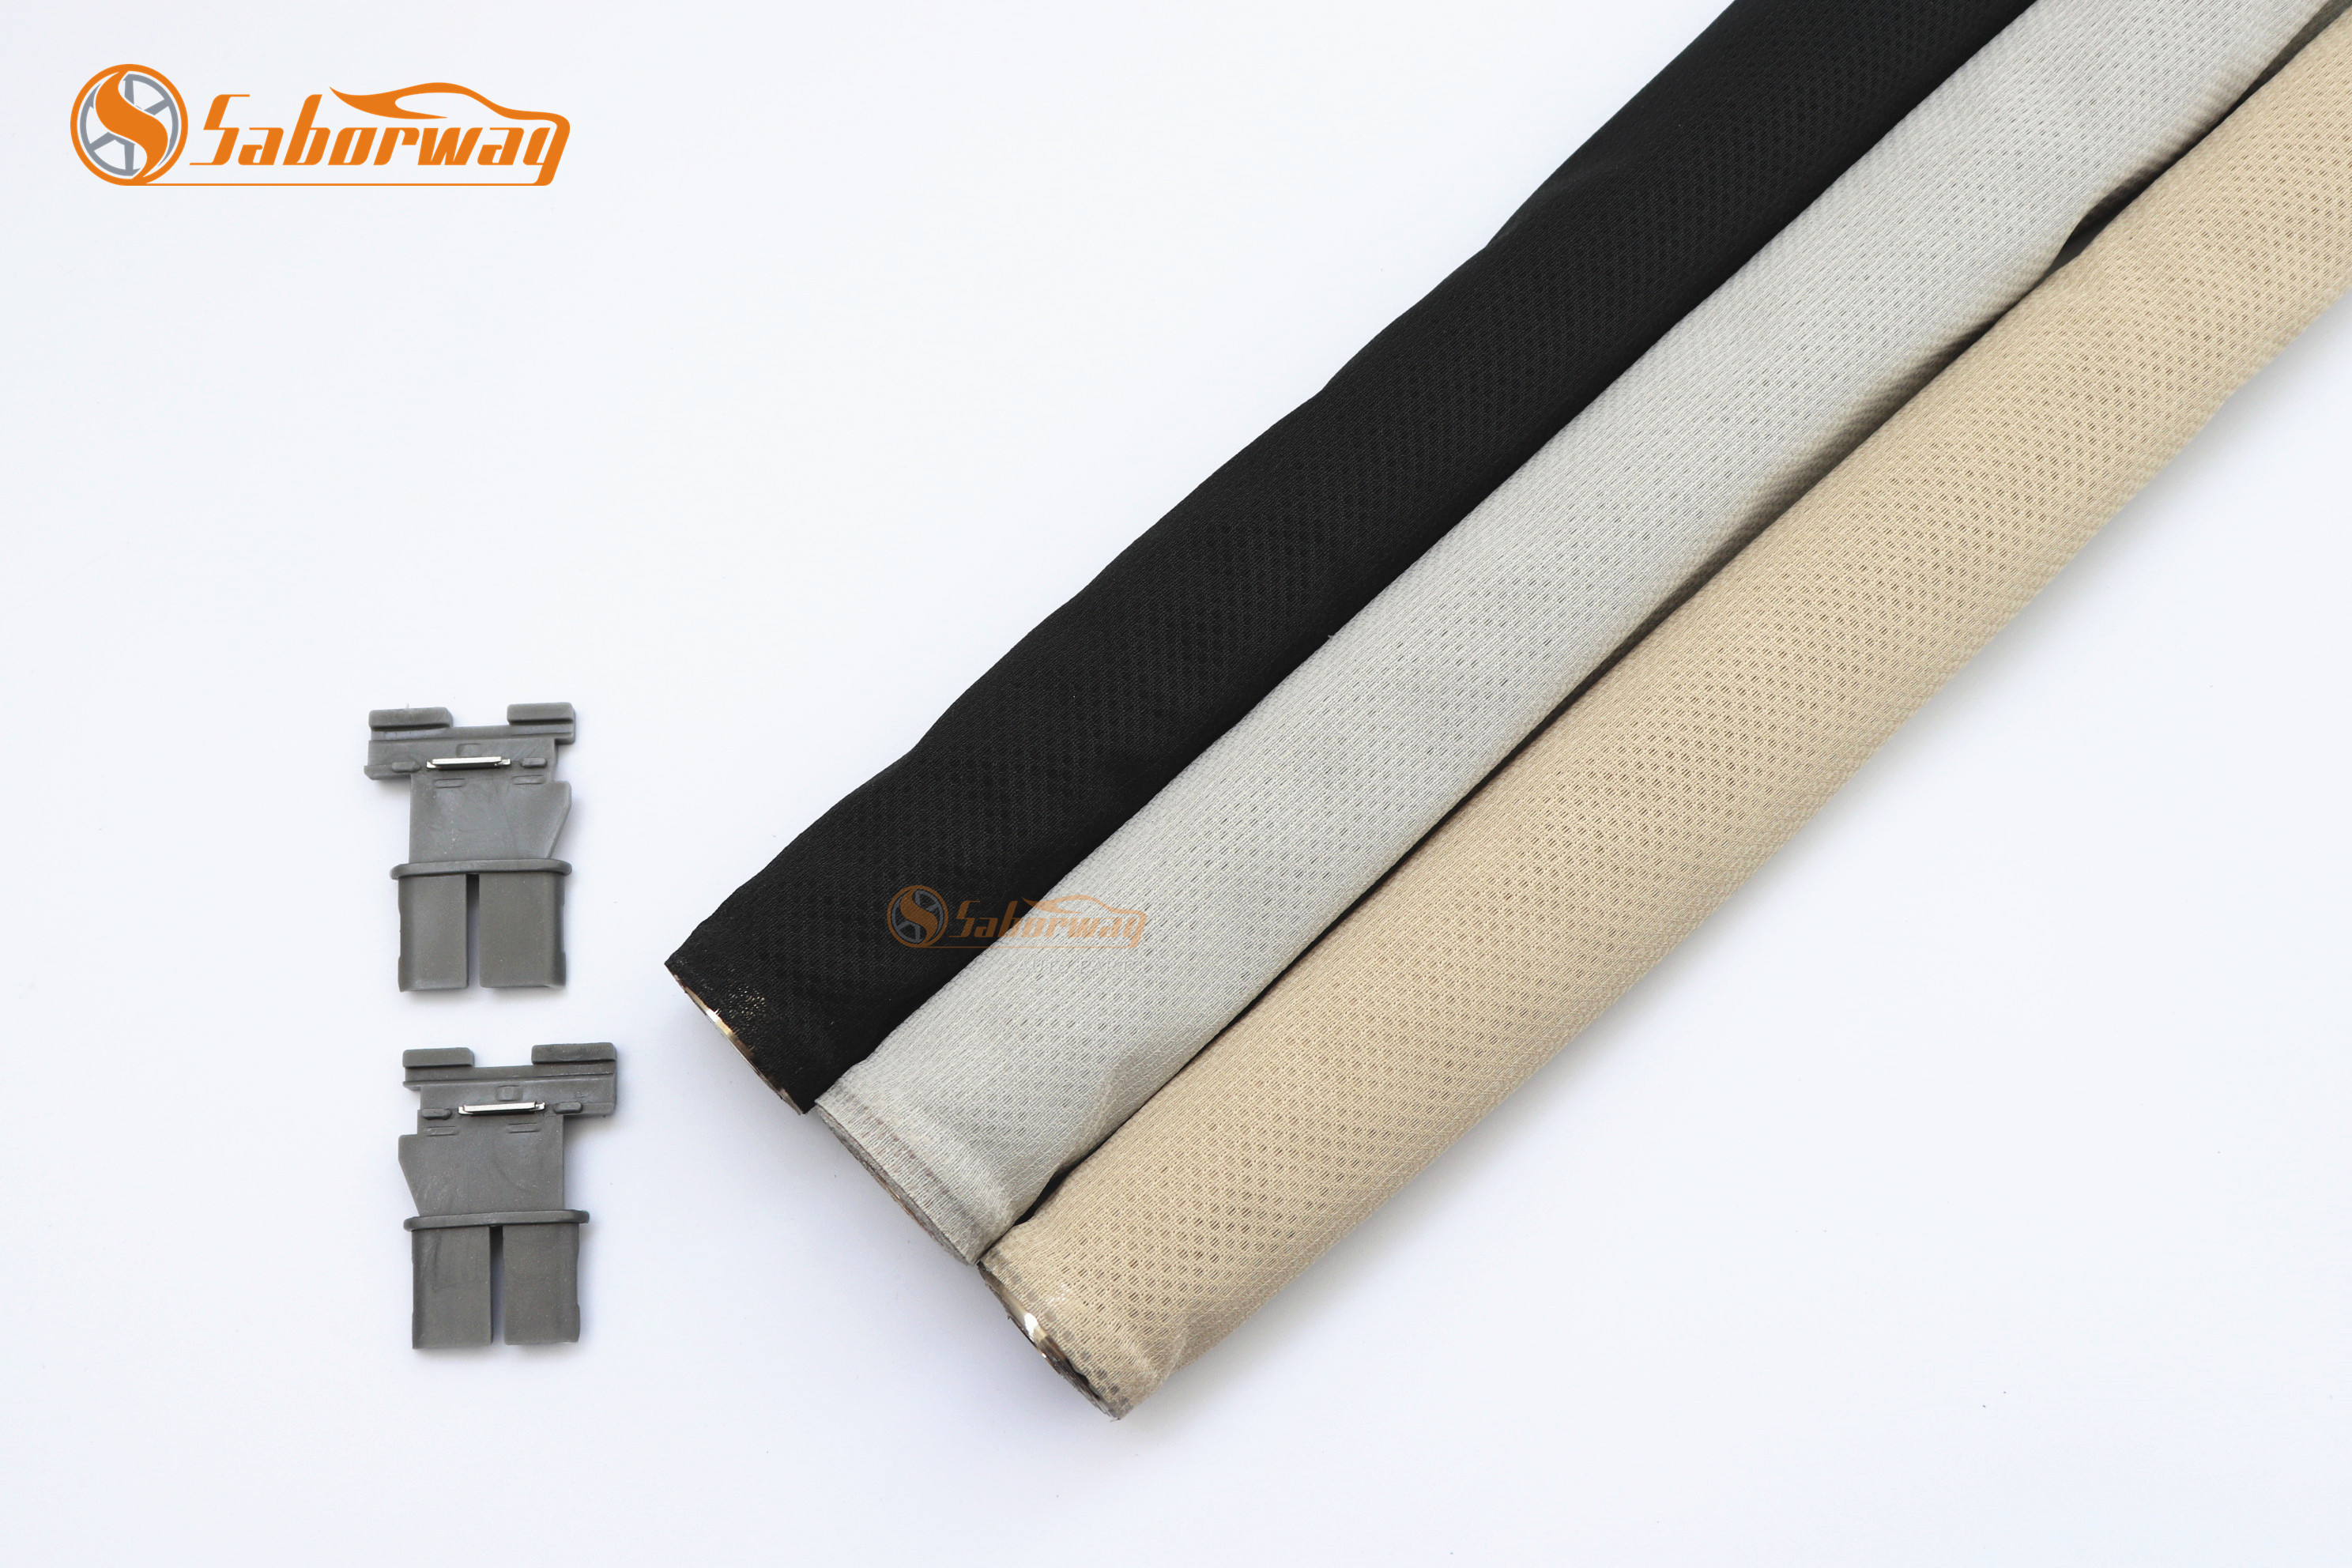 Saborway Black Beige or Gray Skylight shutter Sunroof sunshade curtain For Q5 Sharan New style Tiguan 1K9877307A 5ND877307-in Sun Visors from Automobiles & Motorcycles    1